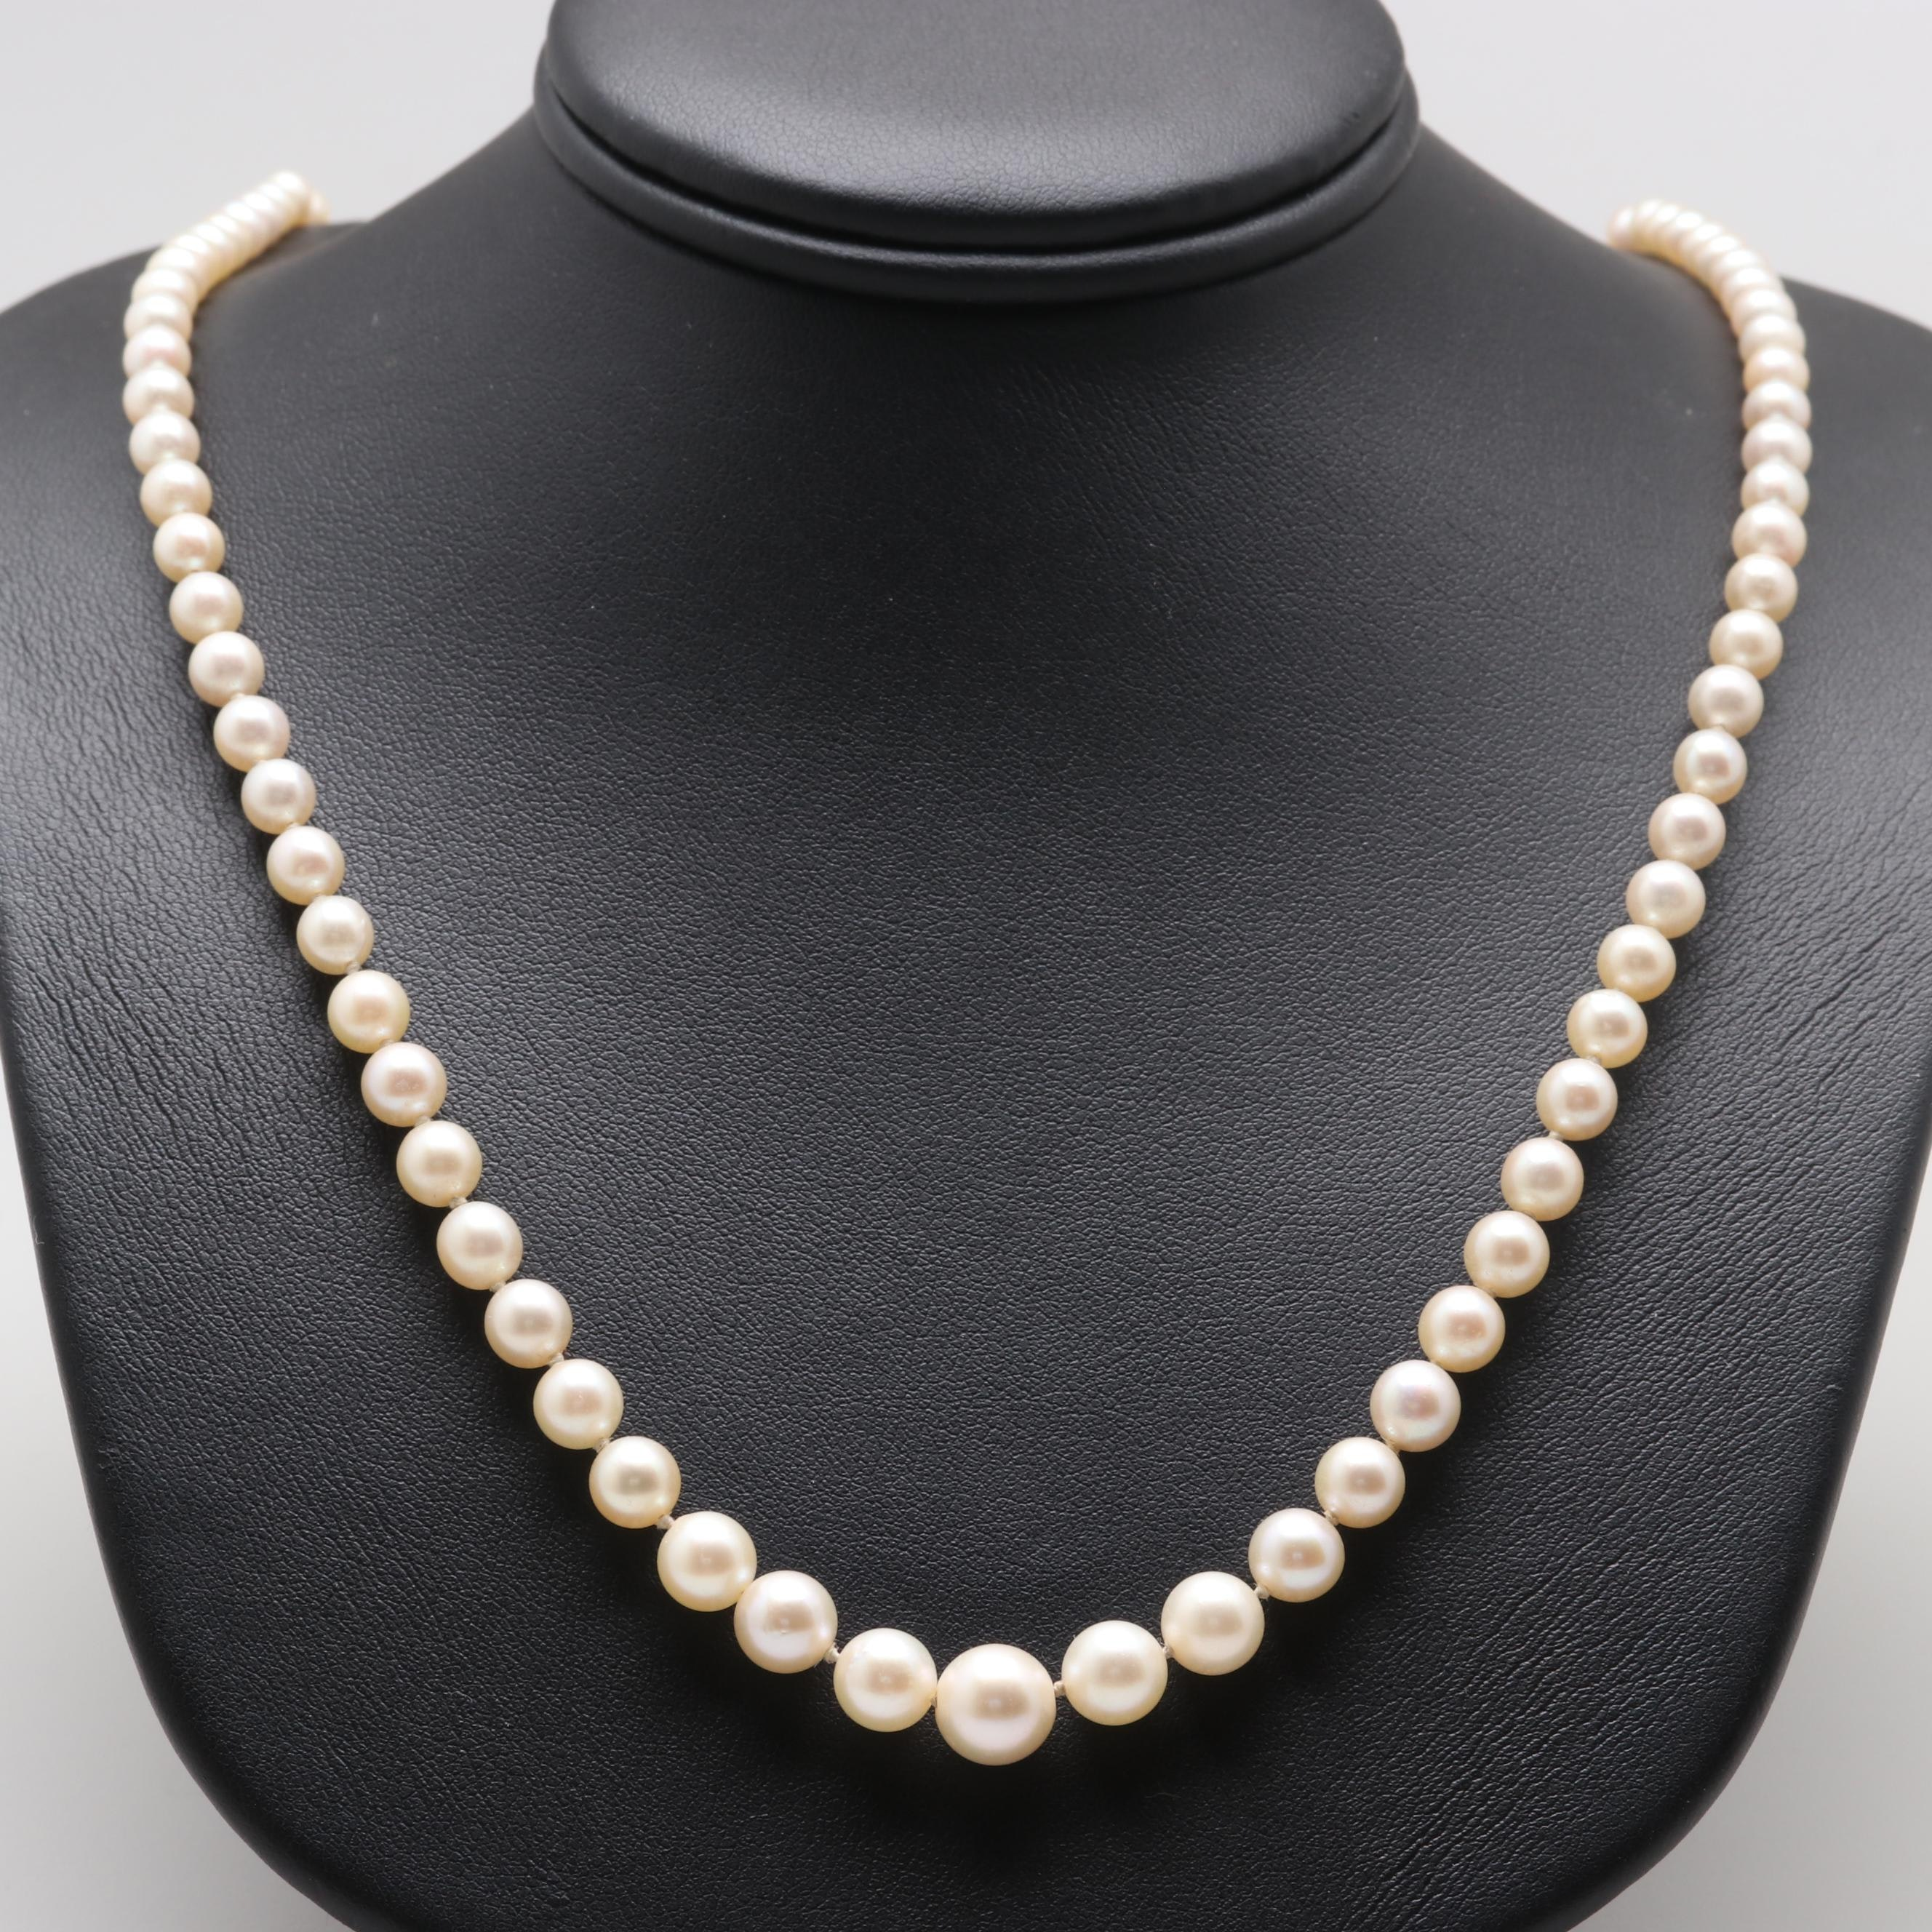 14K and 10K White Gold Graduating Cultured Pearl Necklace